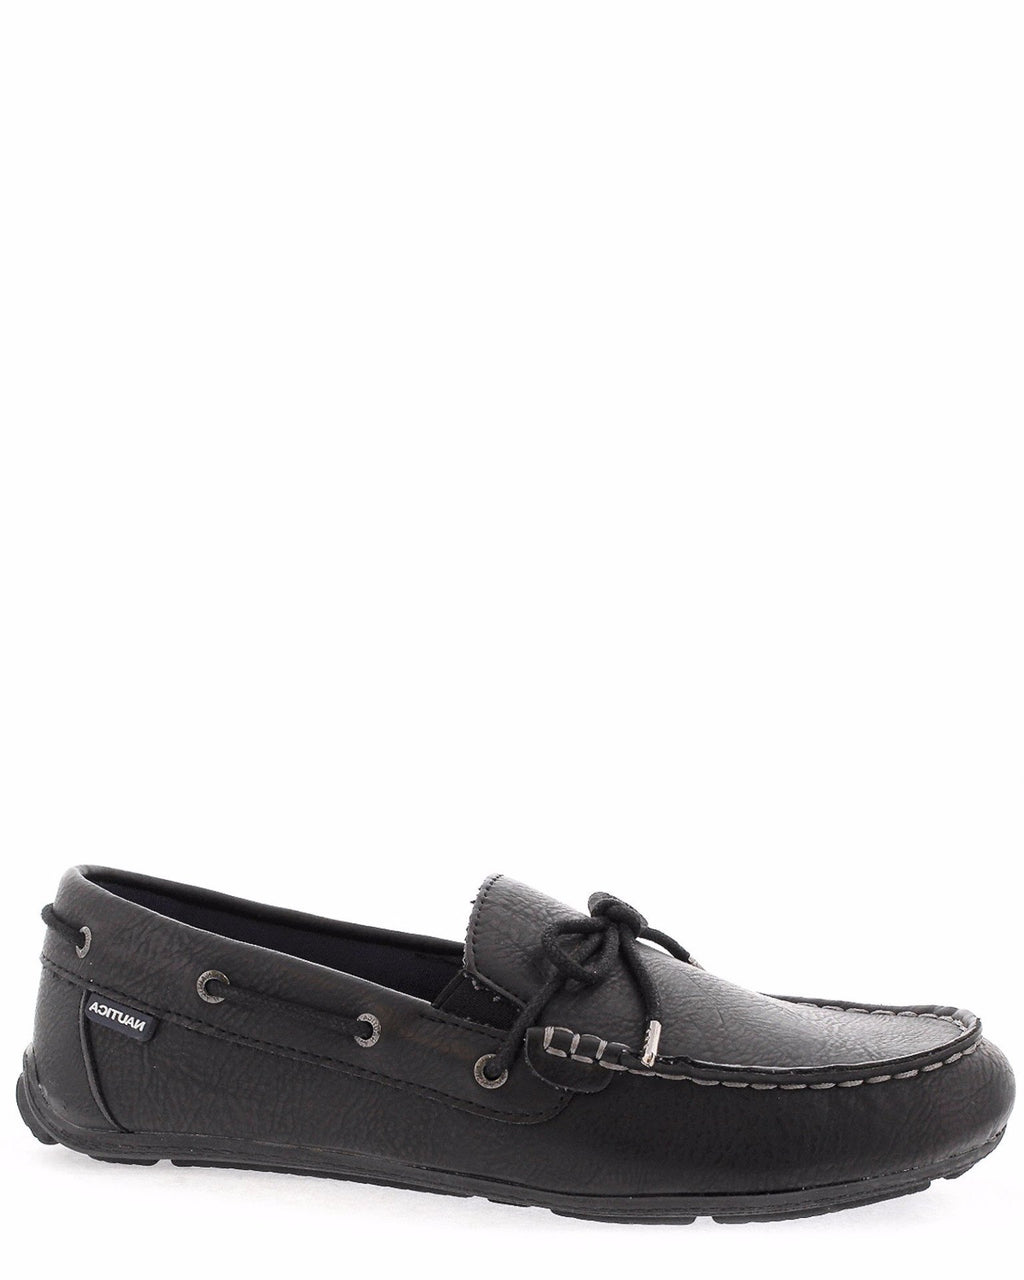 Boy's Sheffield Boat Shoes (PreSchool/Grade School)